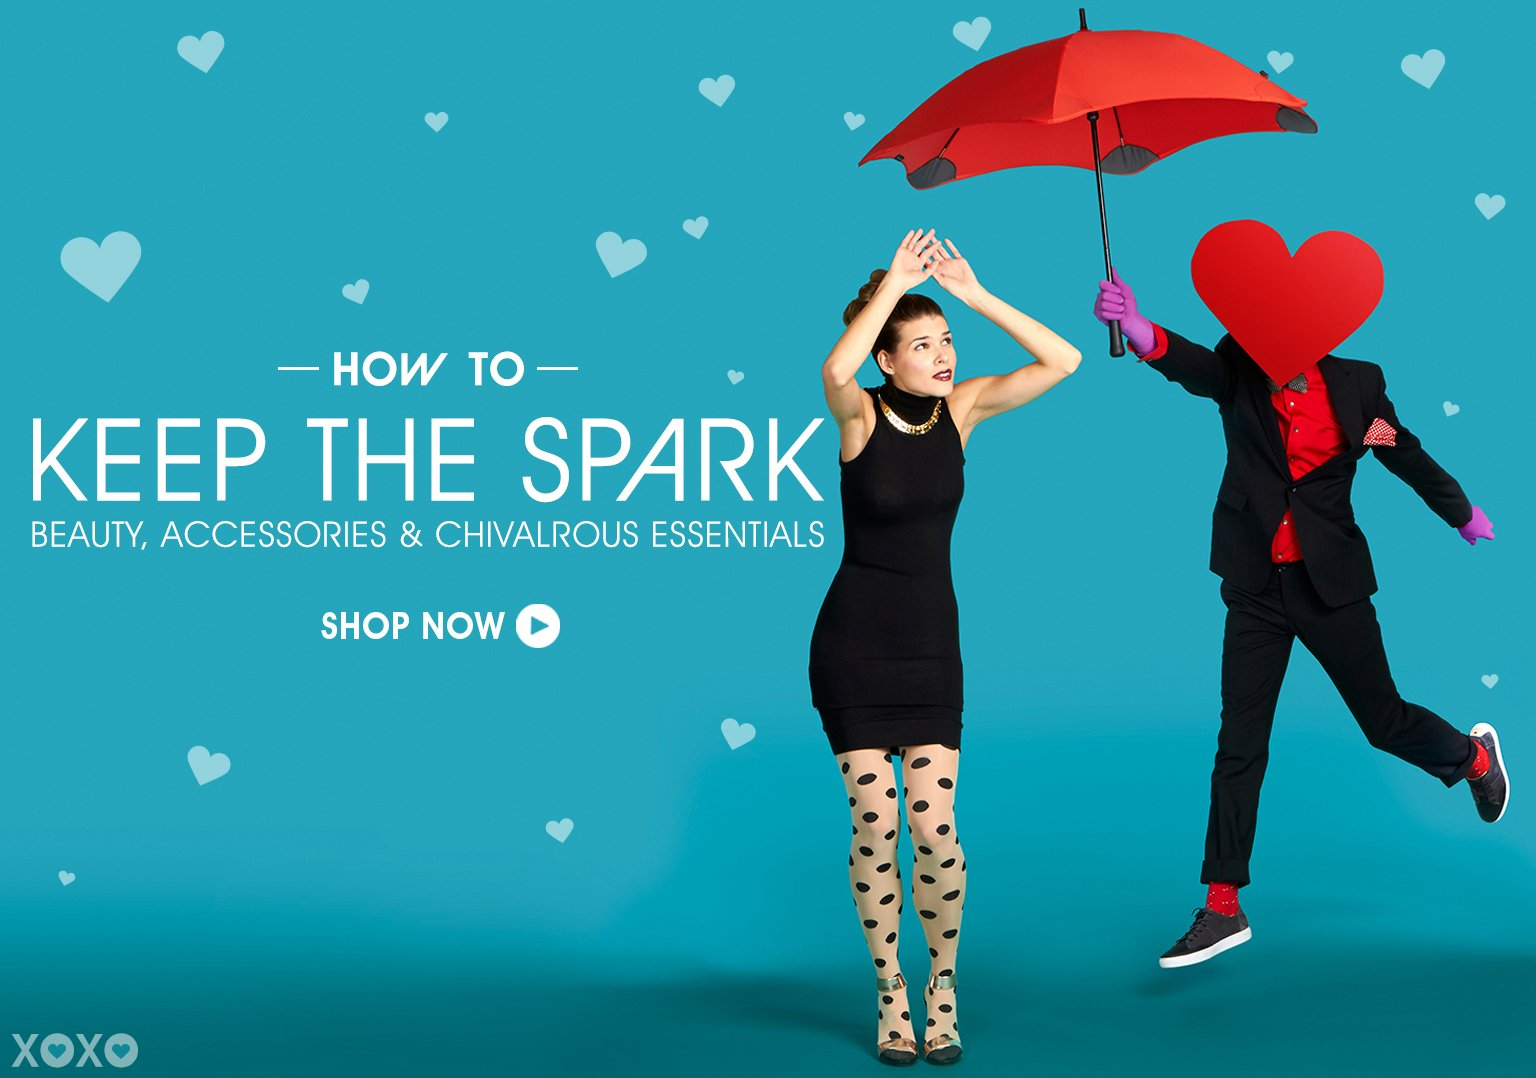 How To Keep The Spark. Beauty, Accessories & Chivalrous Essentials